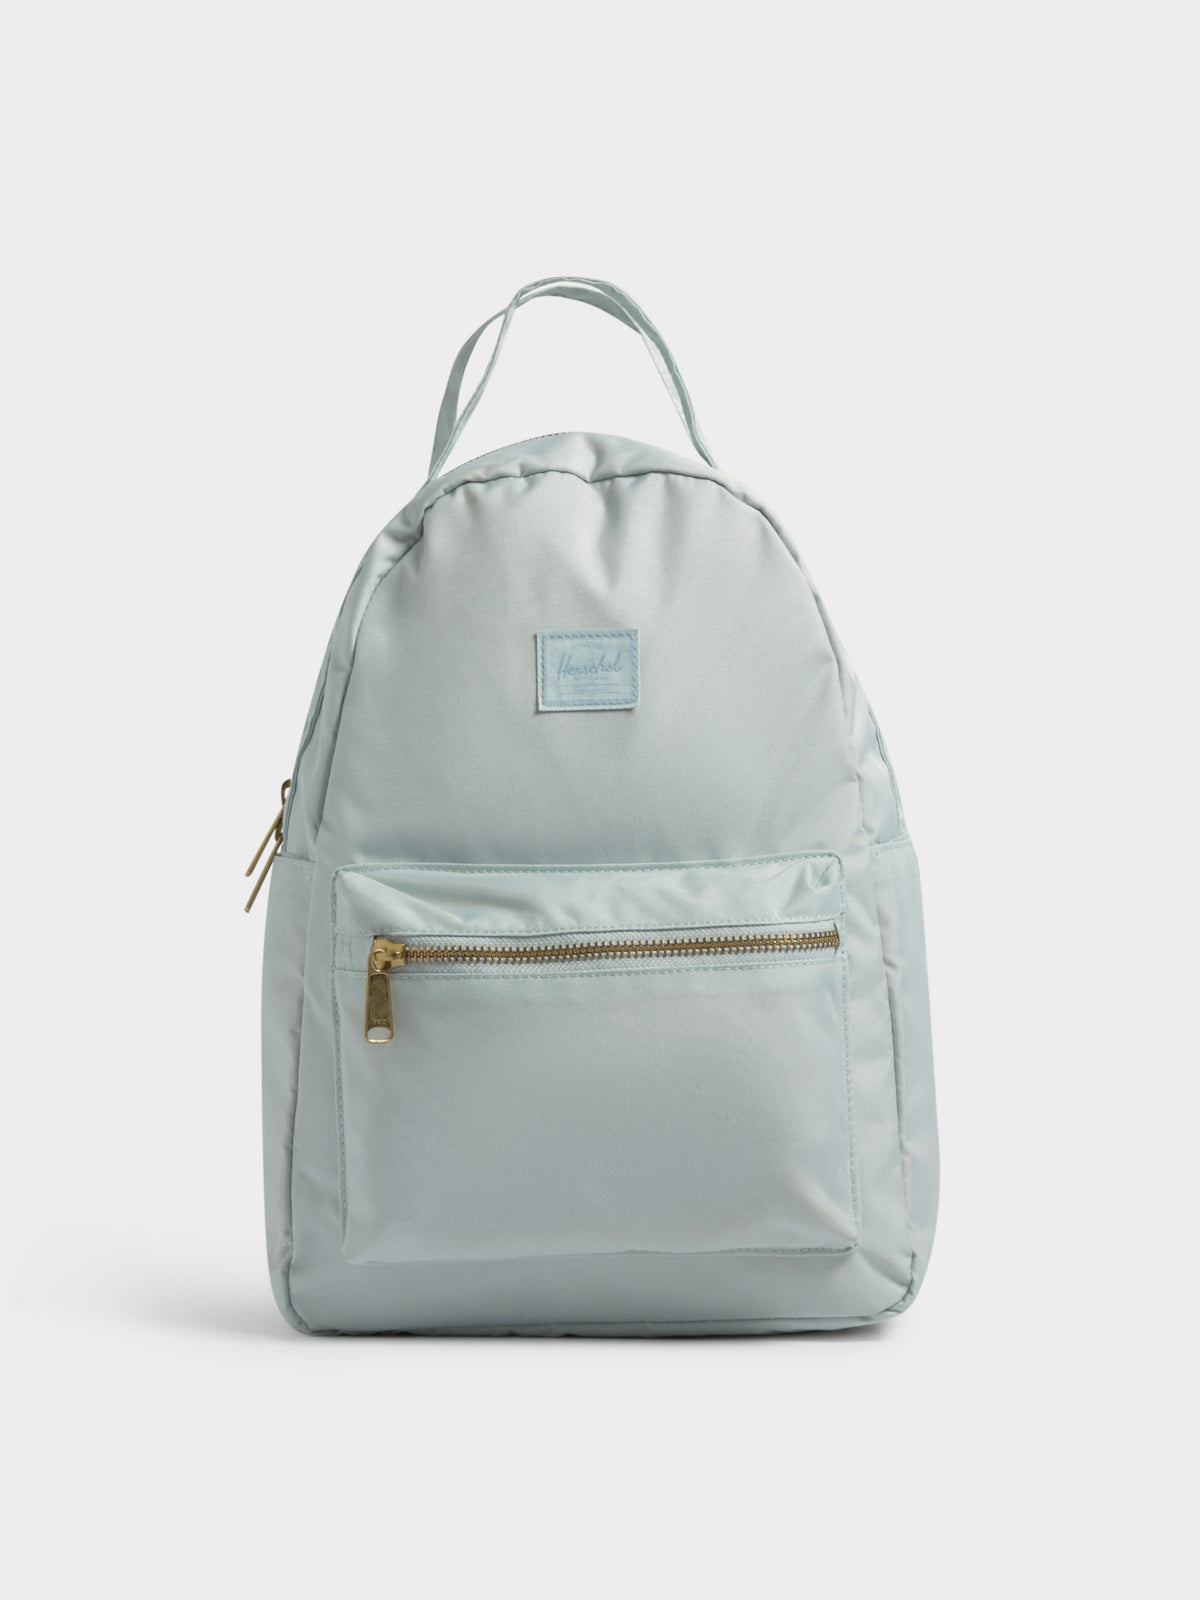 Nova Small Backpack in Ballad Blue Pastel